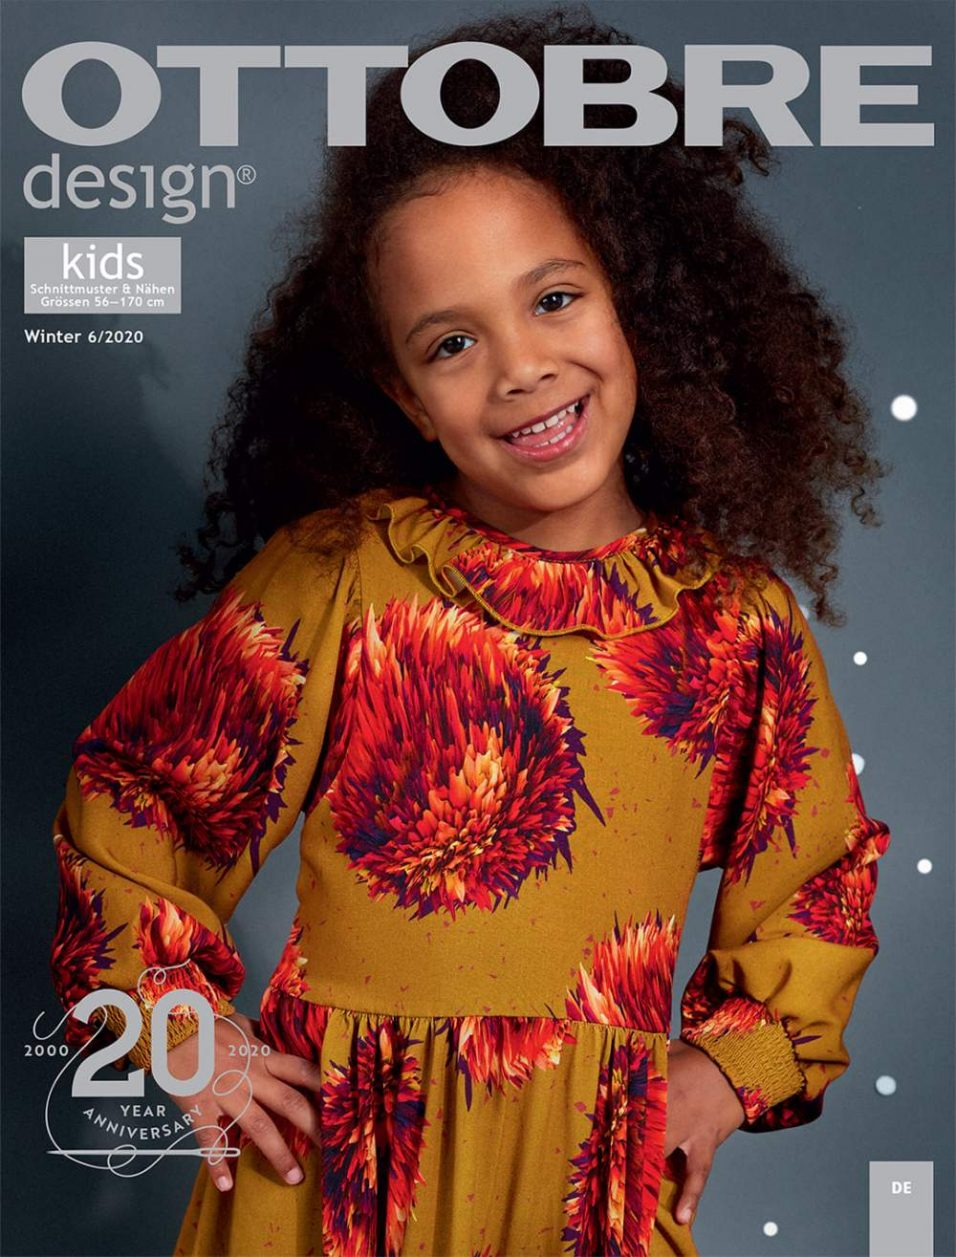 Ottobre design Kids Winter 06/2020